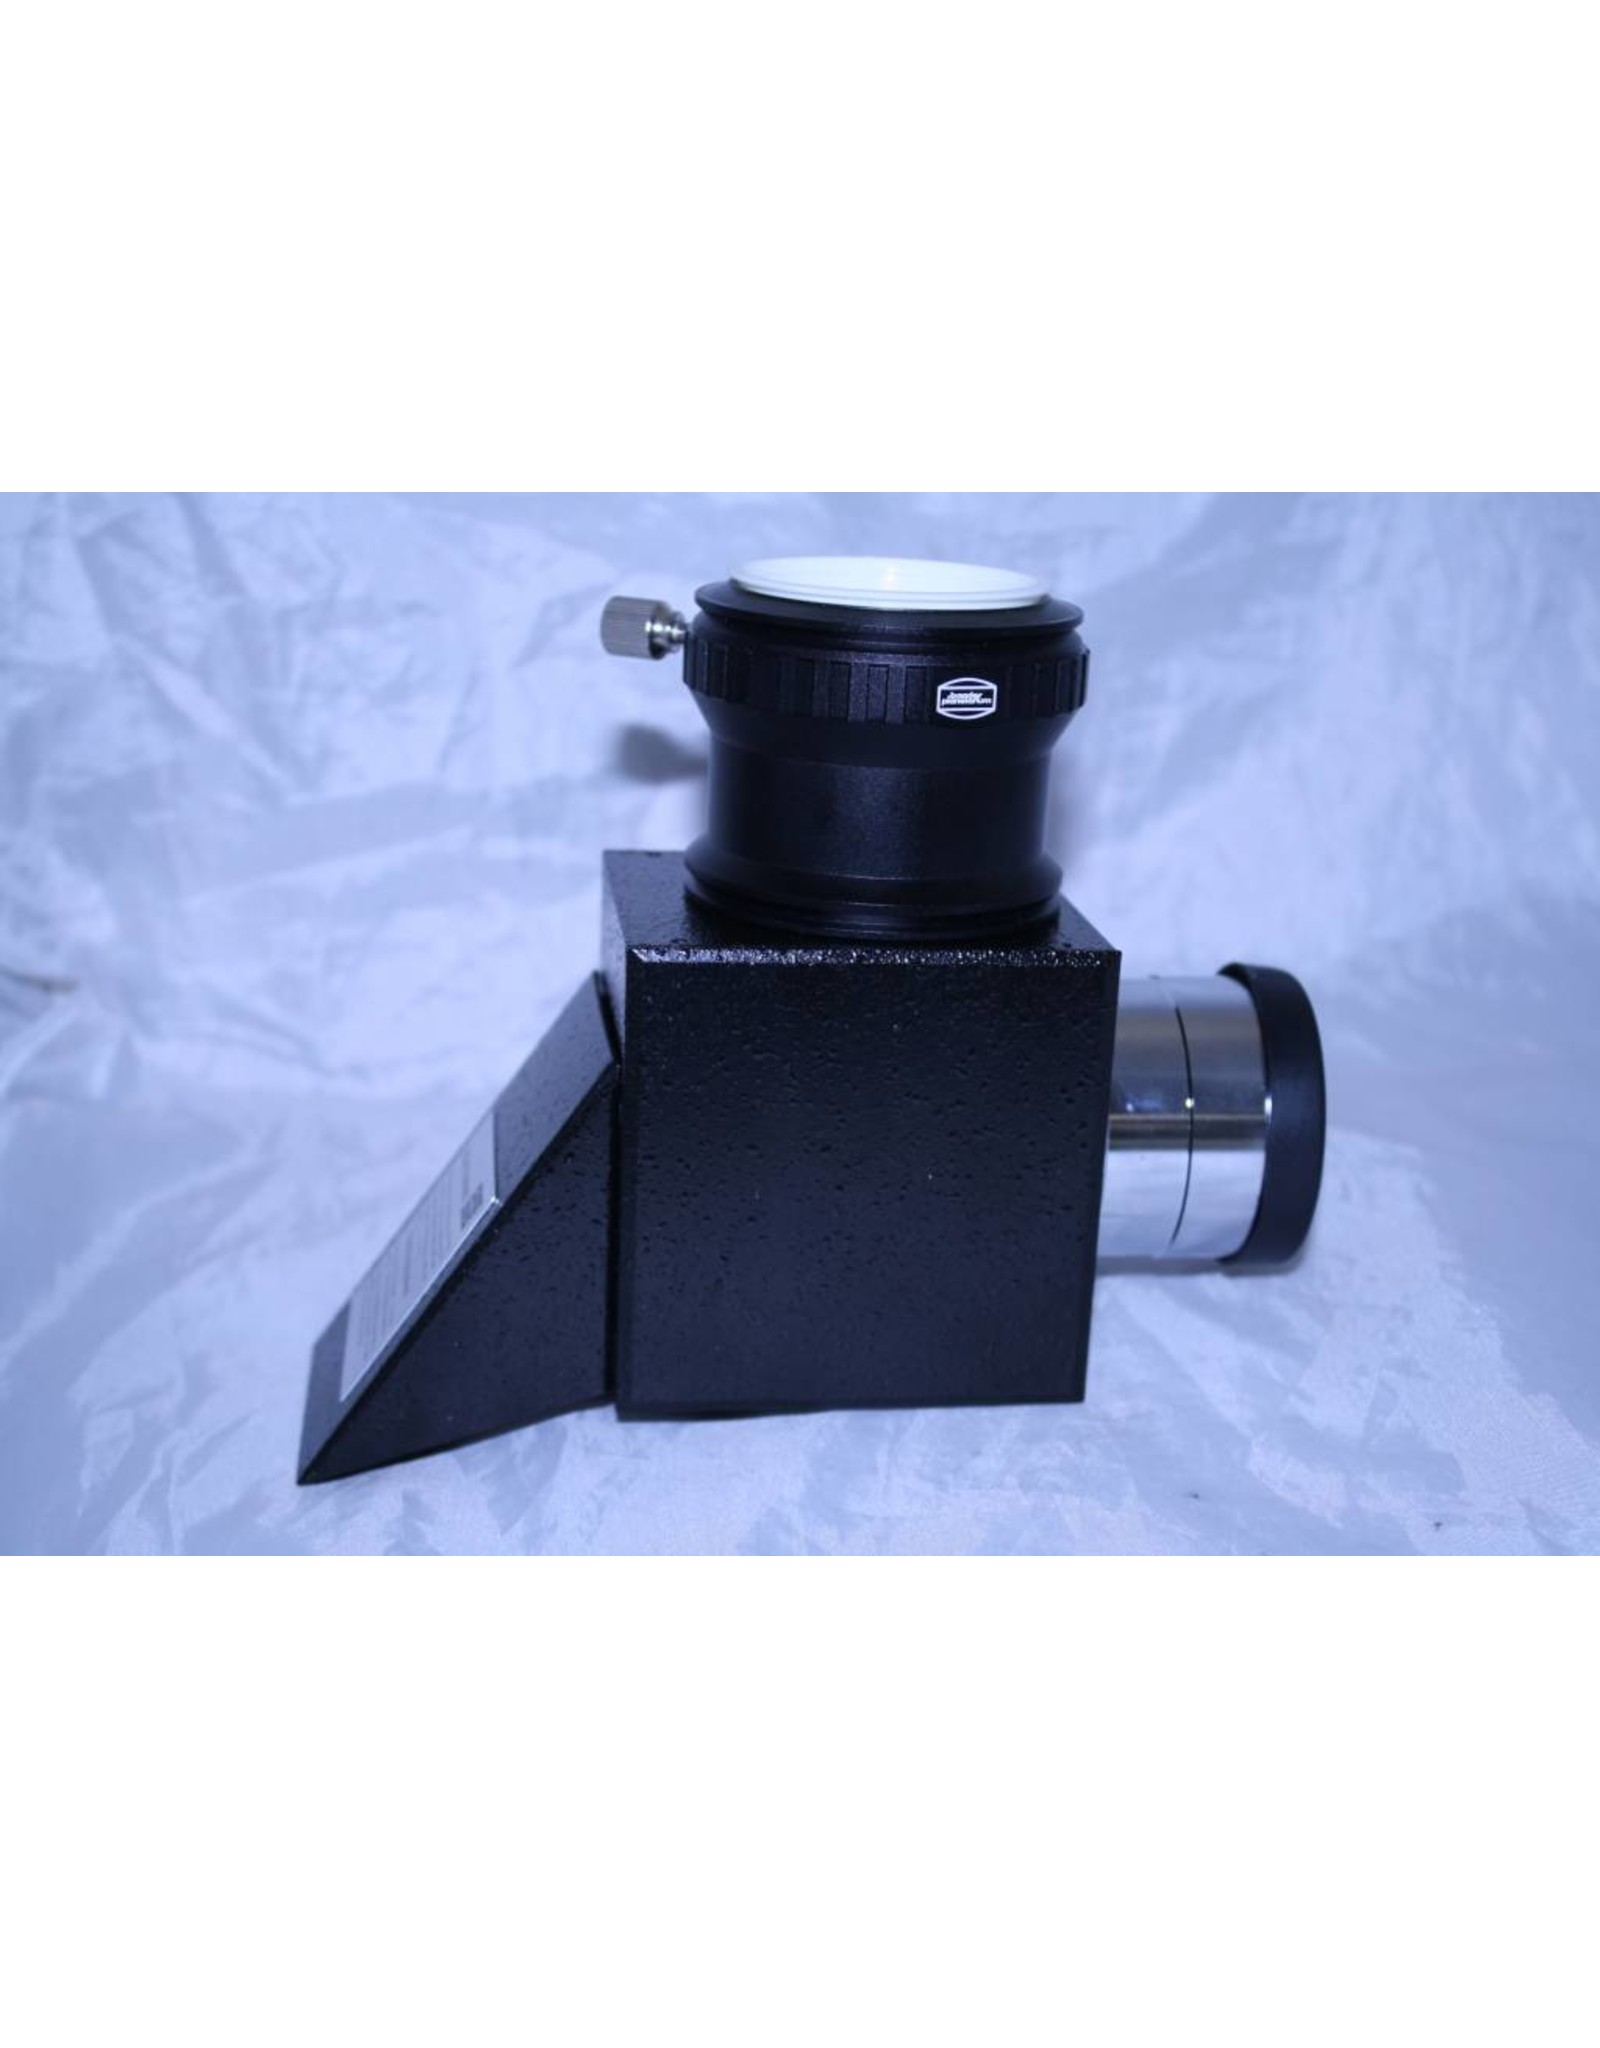 Baader Planetarium Baader Original Herschel Wedge with ND Filters (Visual & Photographic) (Pre-owned)